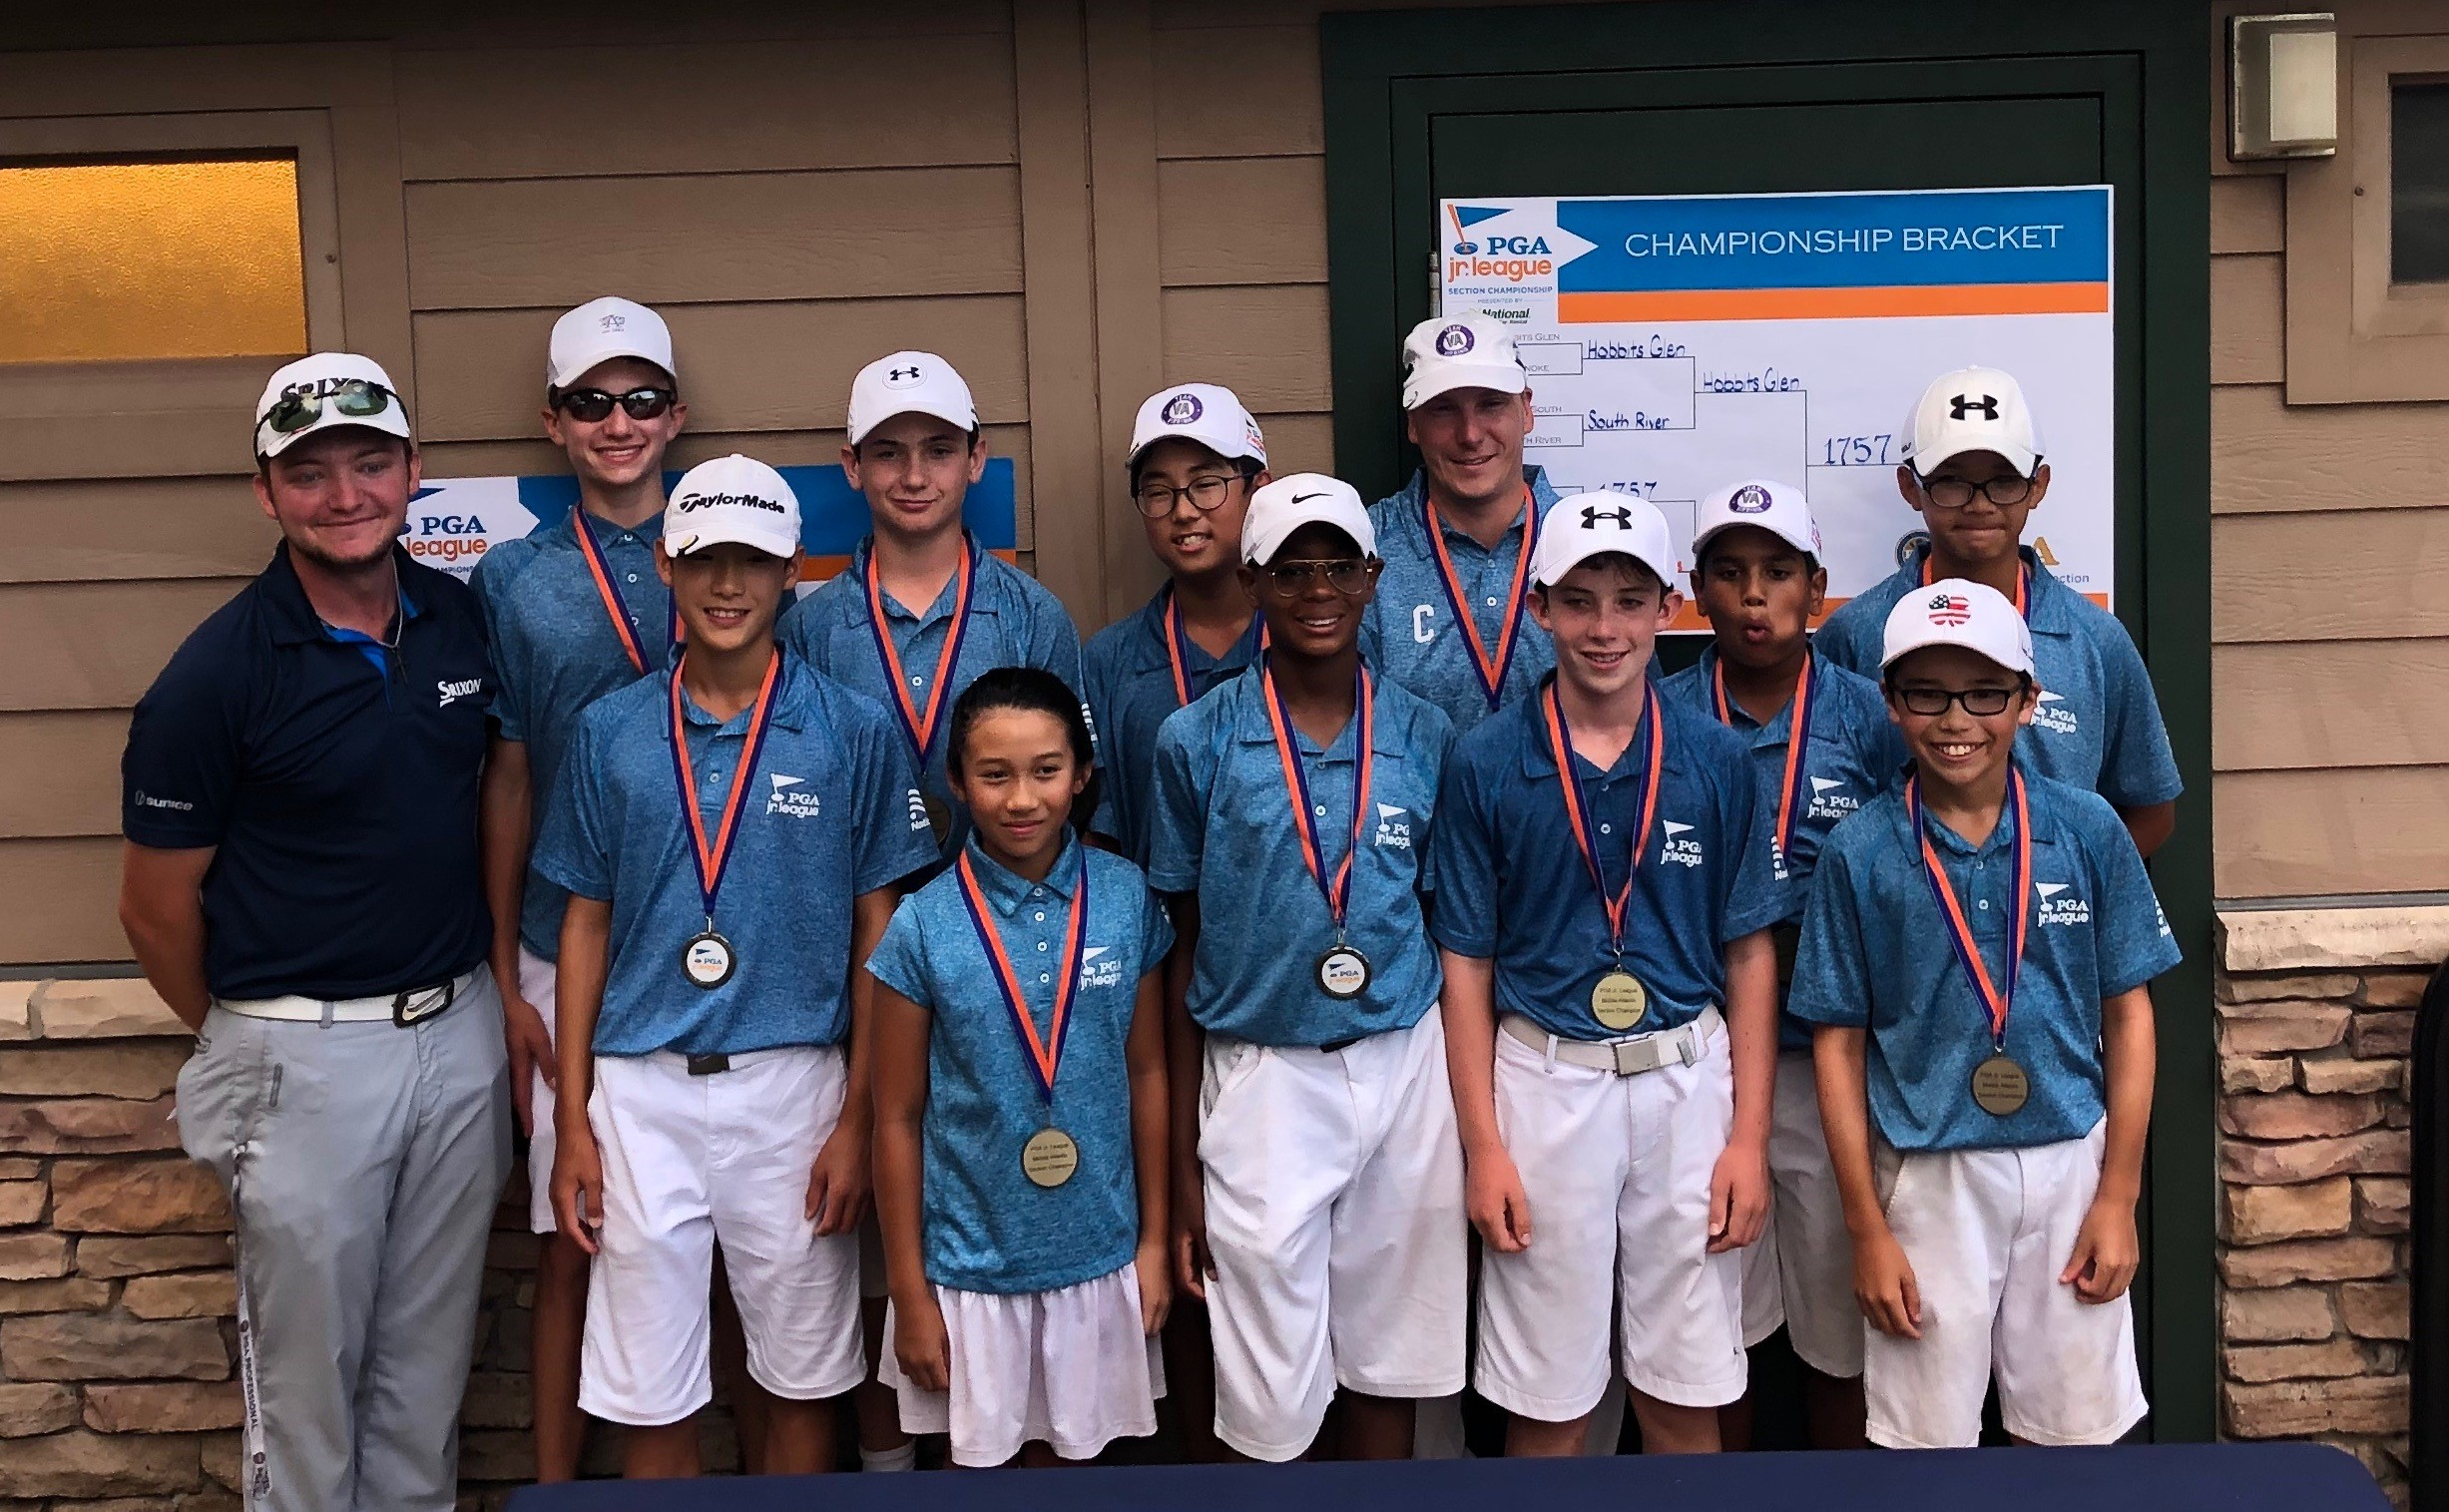 PGA Junior League Sectional Championship Team